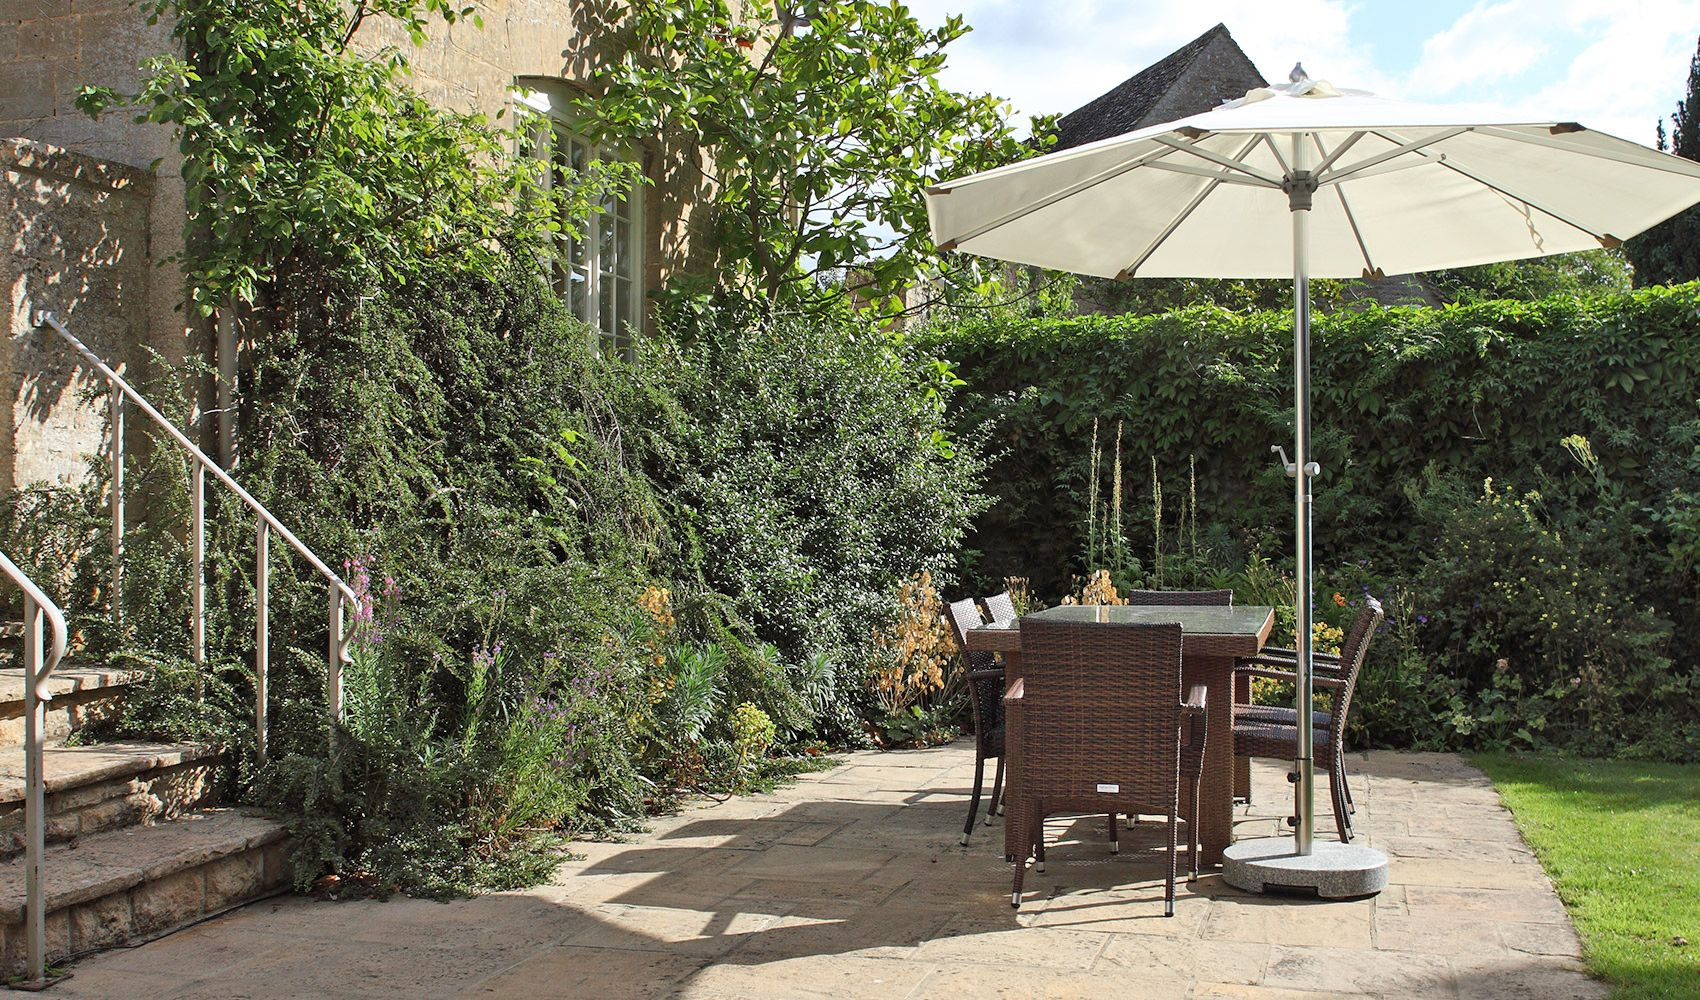 Lawned garden with terrace. outdoor dining furniture & a barbecue